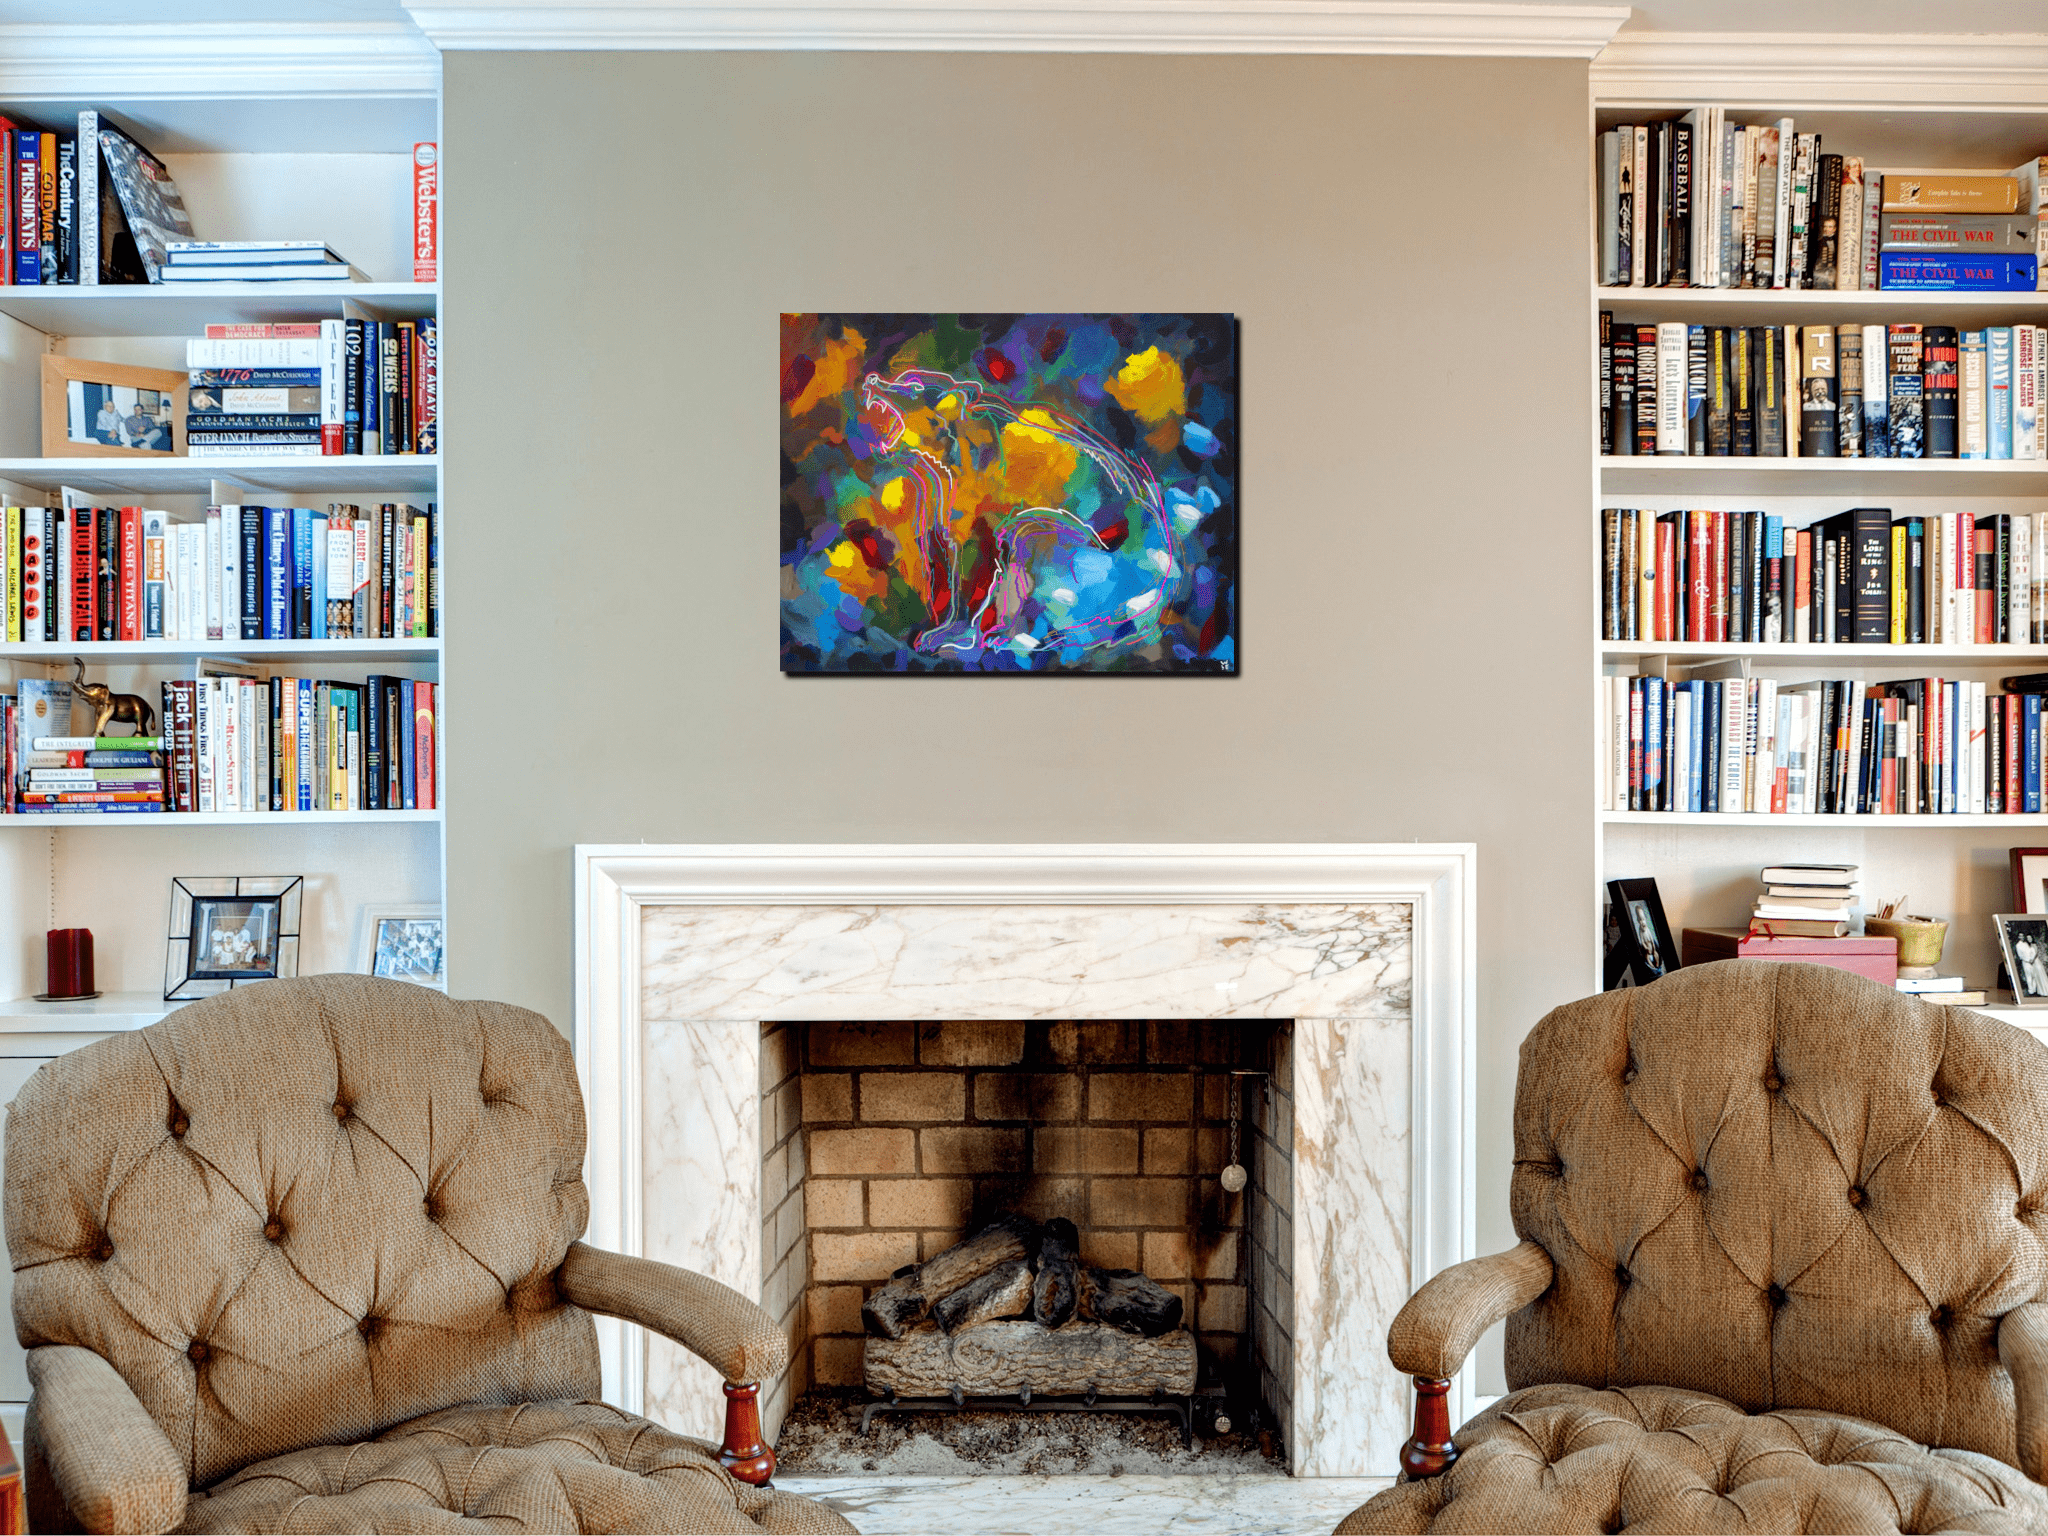 Storytime Around The Campfire bear abstract animal artist art painting Will Eskridge acrylic bright colors in situ